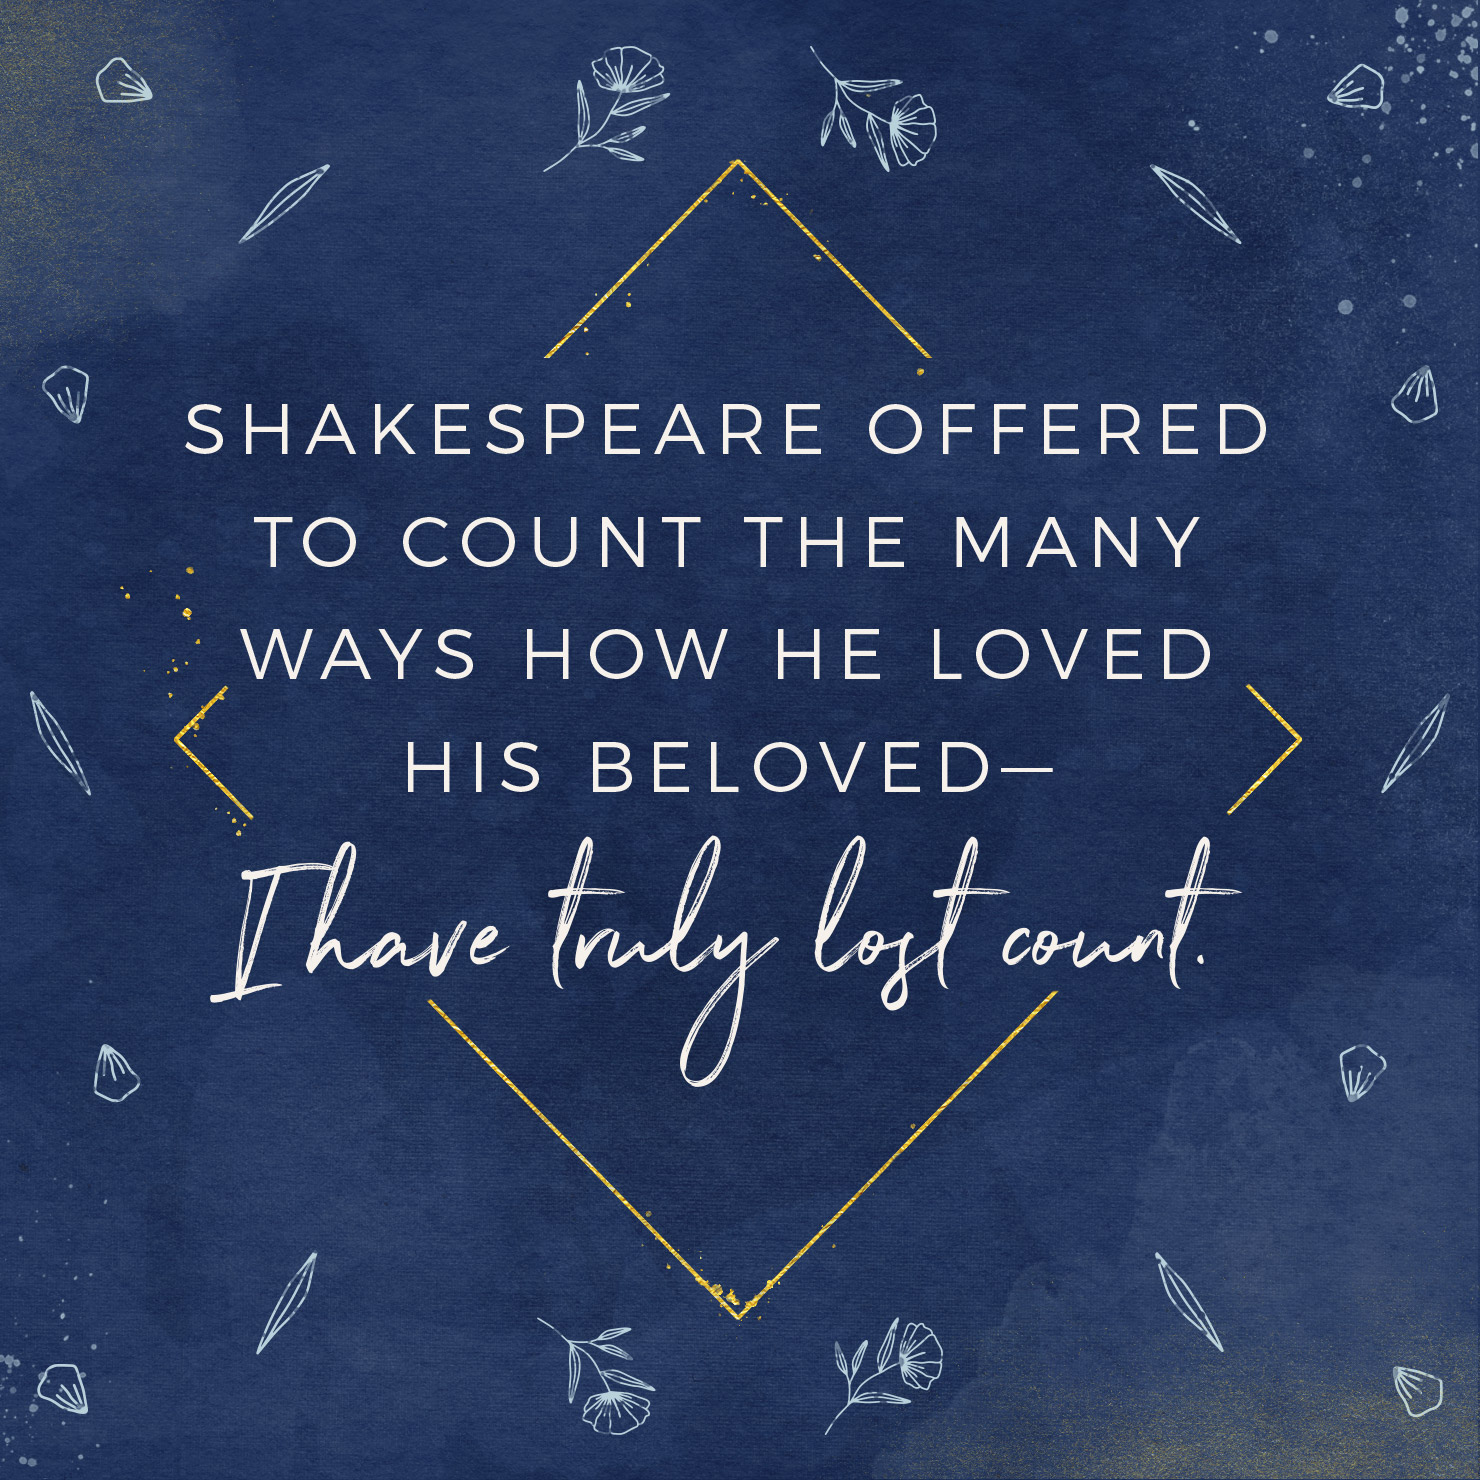 Shakespeare offered to count the many ways how he loved his beloved—I have truly lost count.